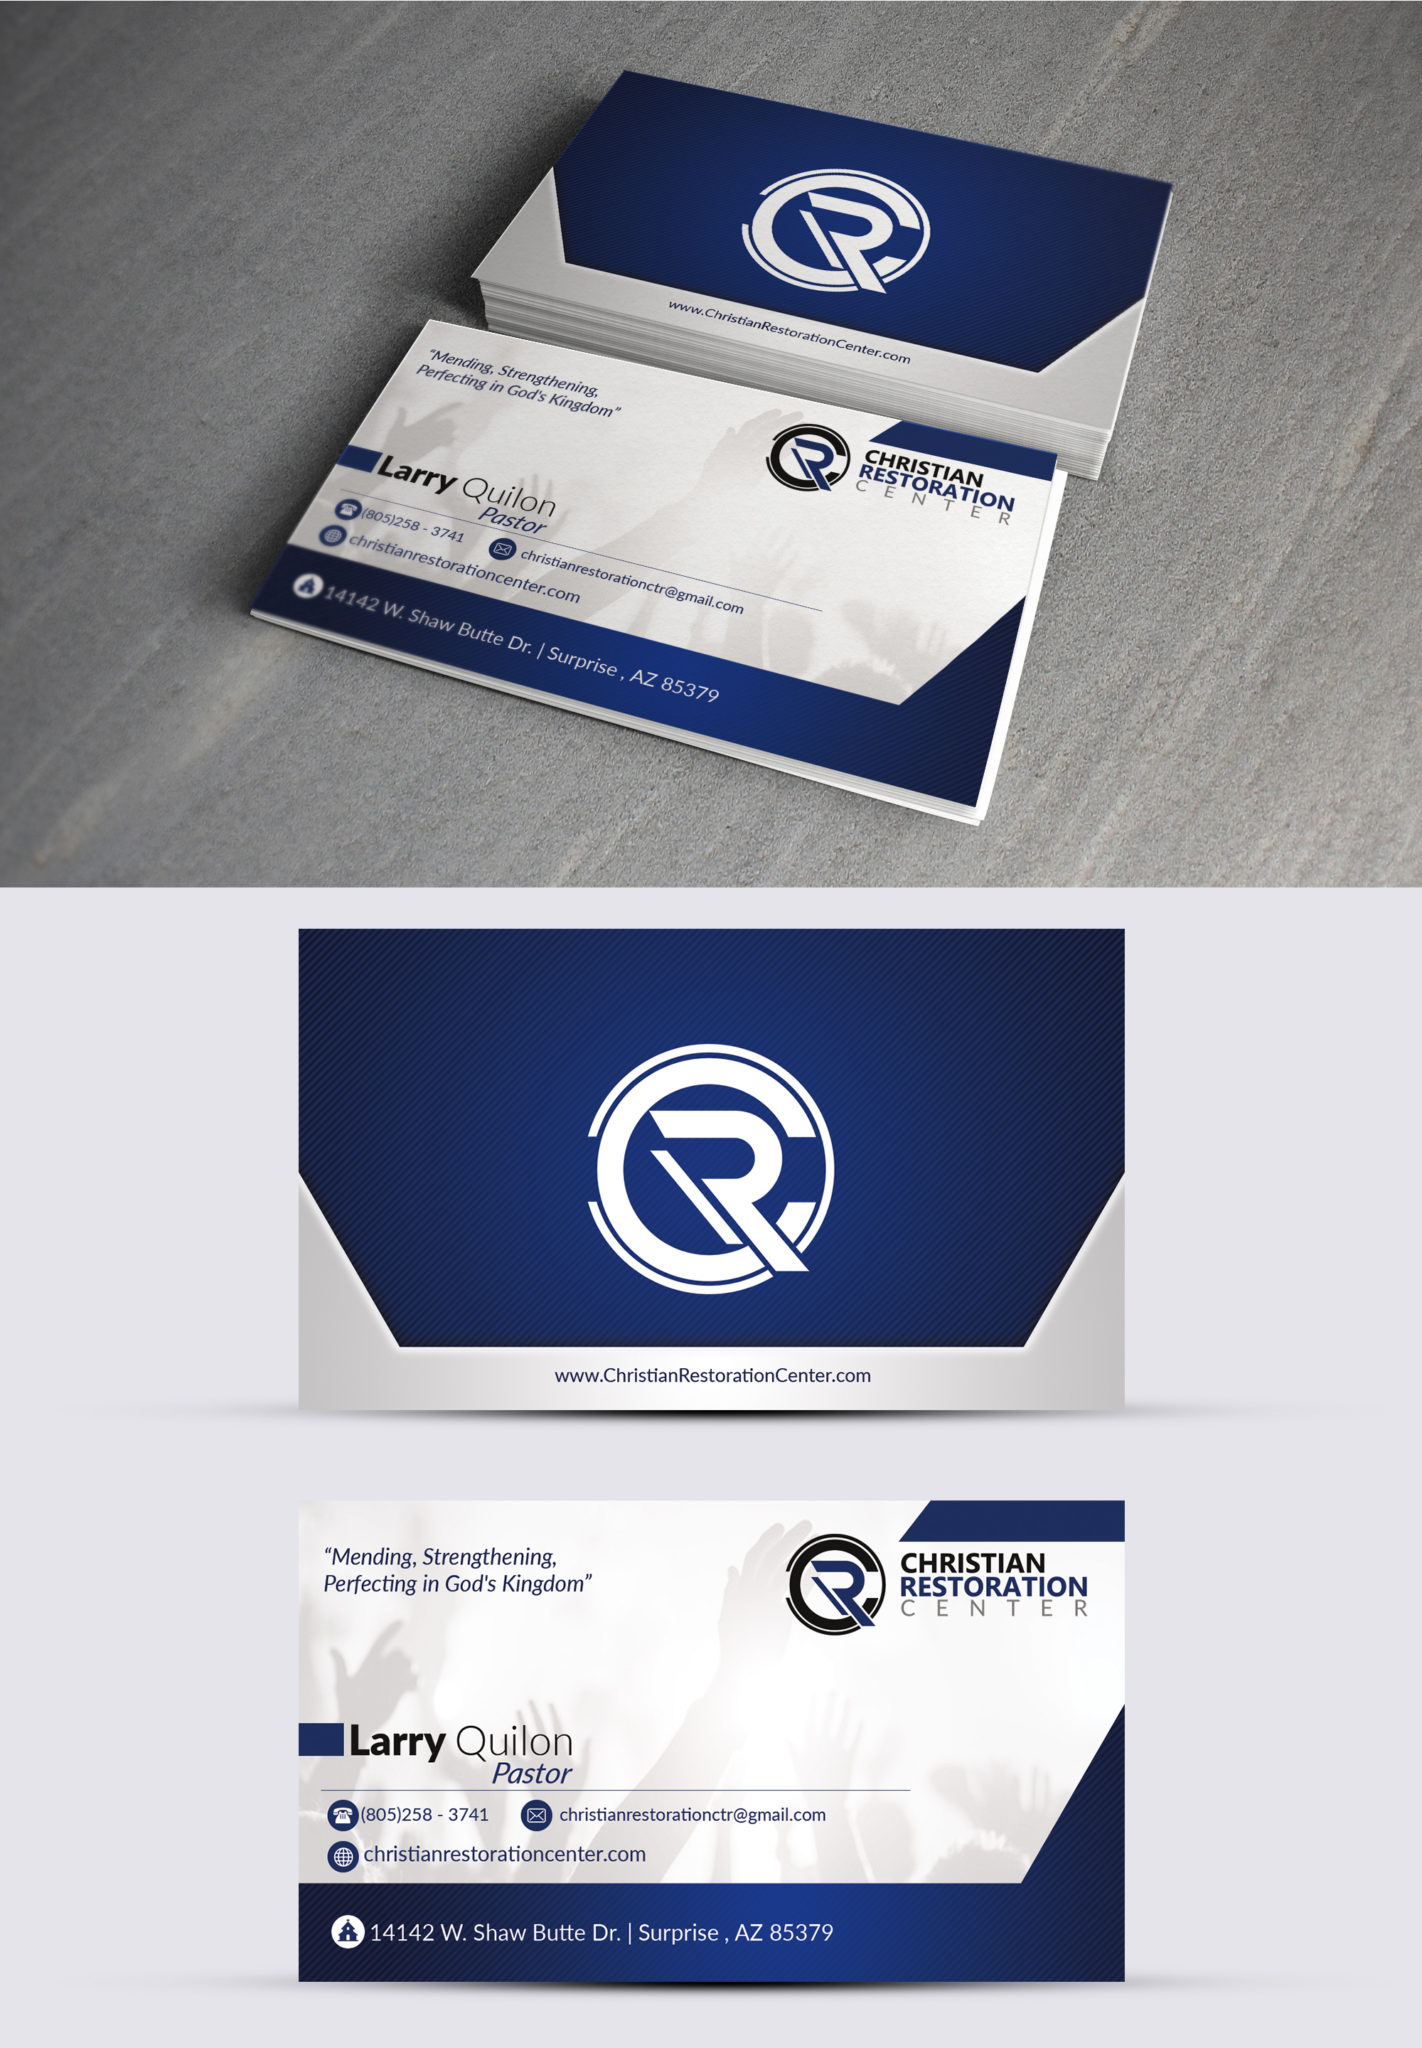 Business cards el paso images free business cards luxury photos of business cards el paso business cards business cards rivera designz magicingreecefo images magicingreecefo Choice Image